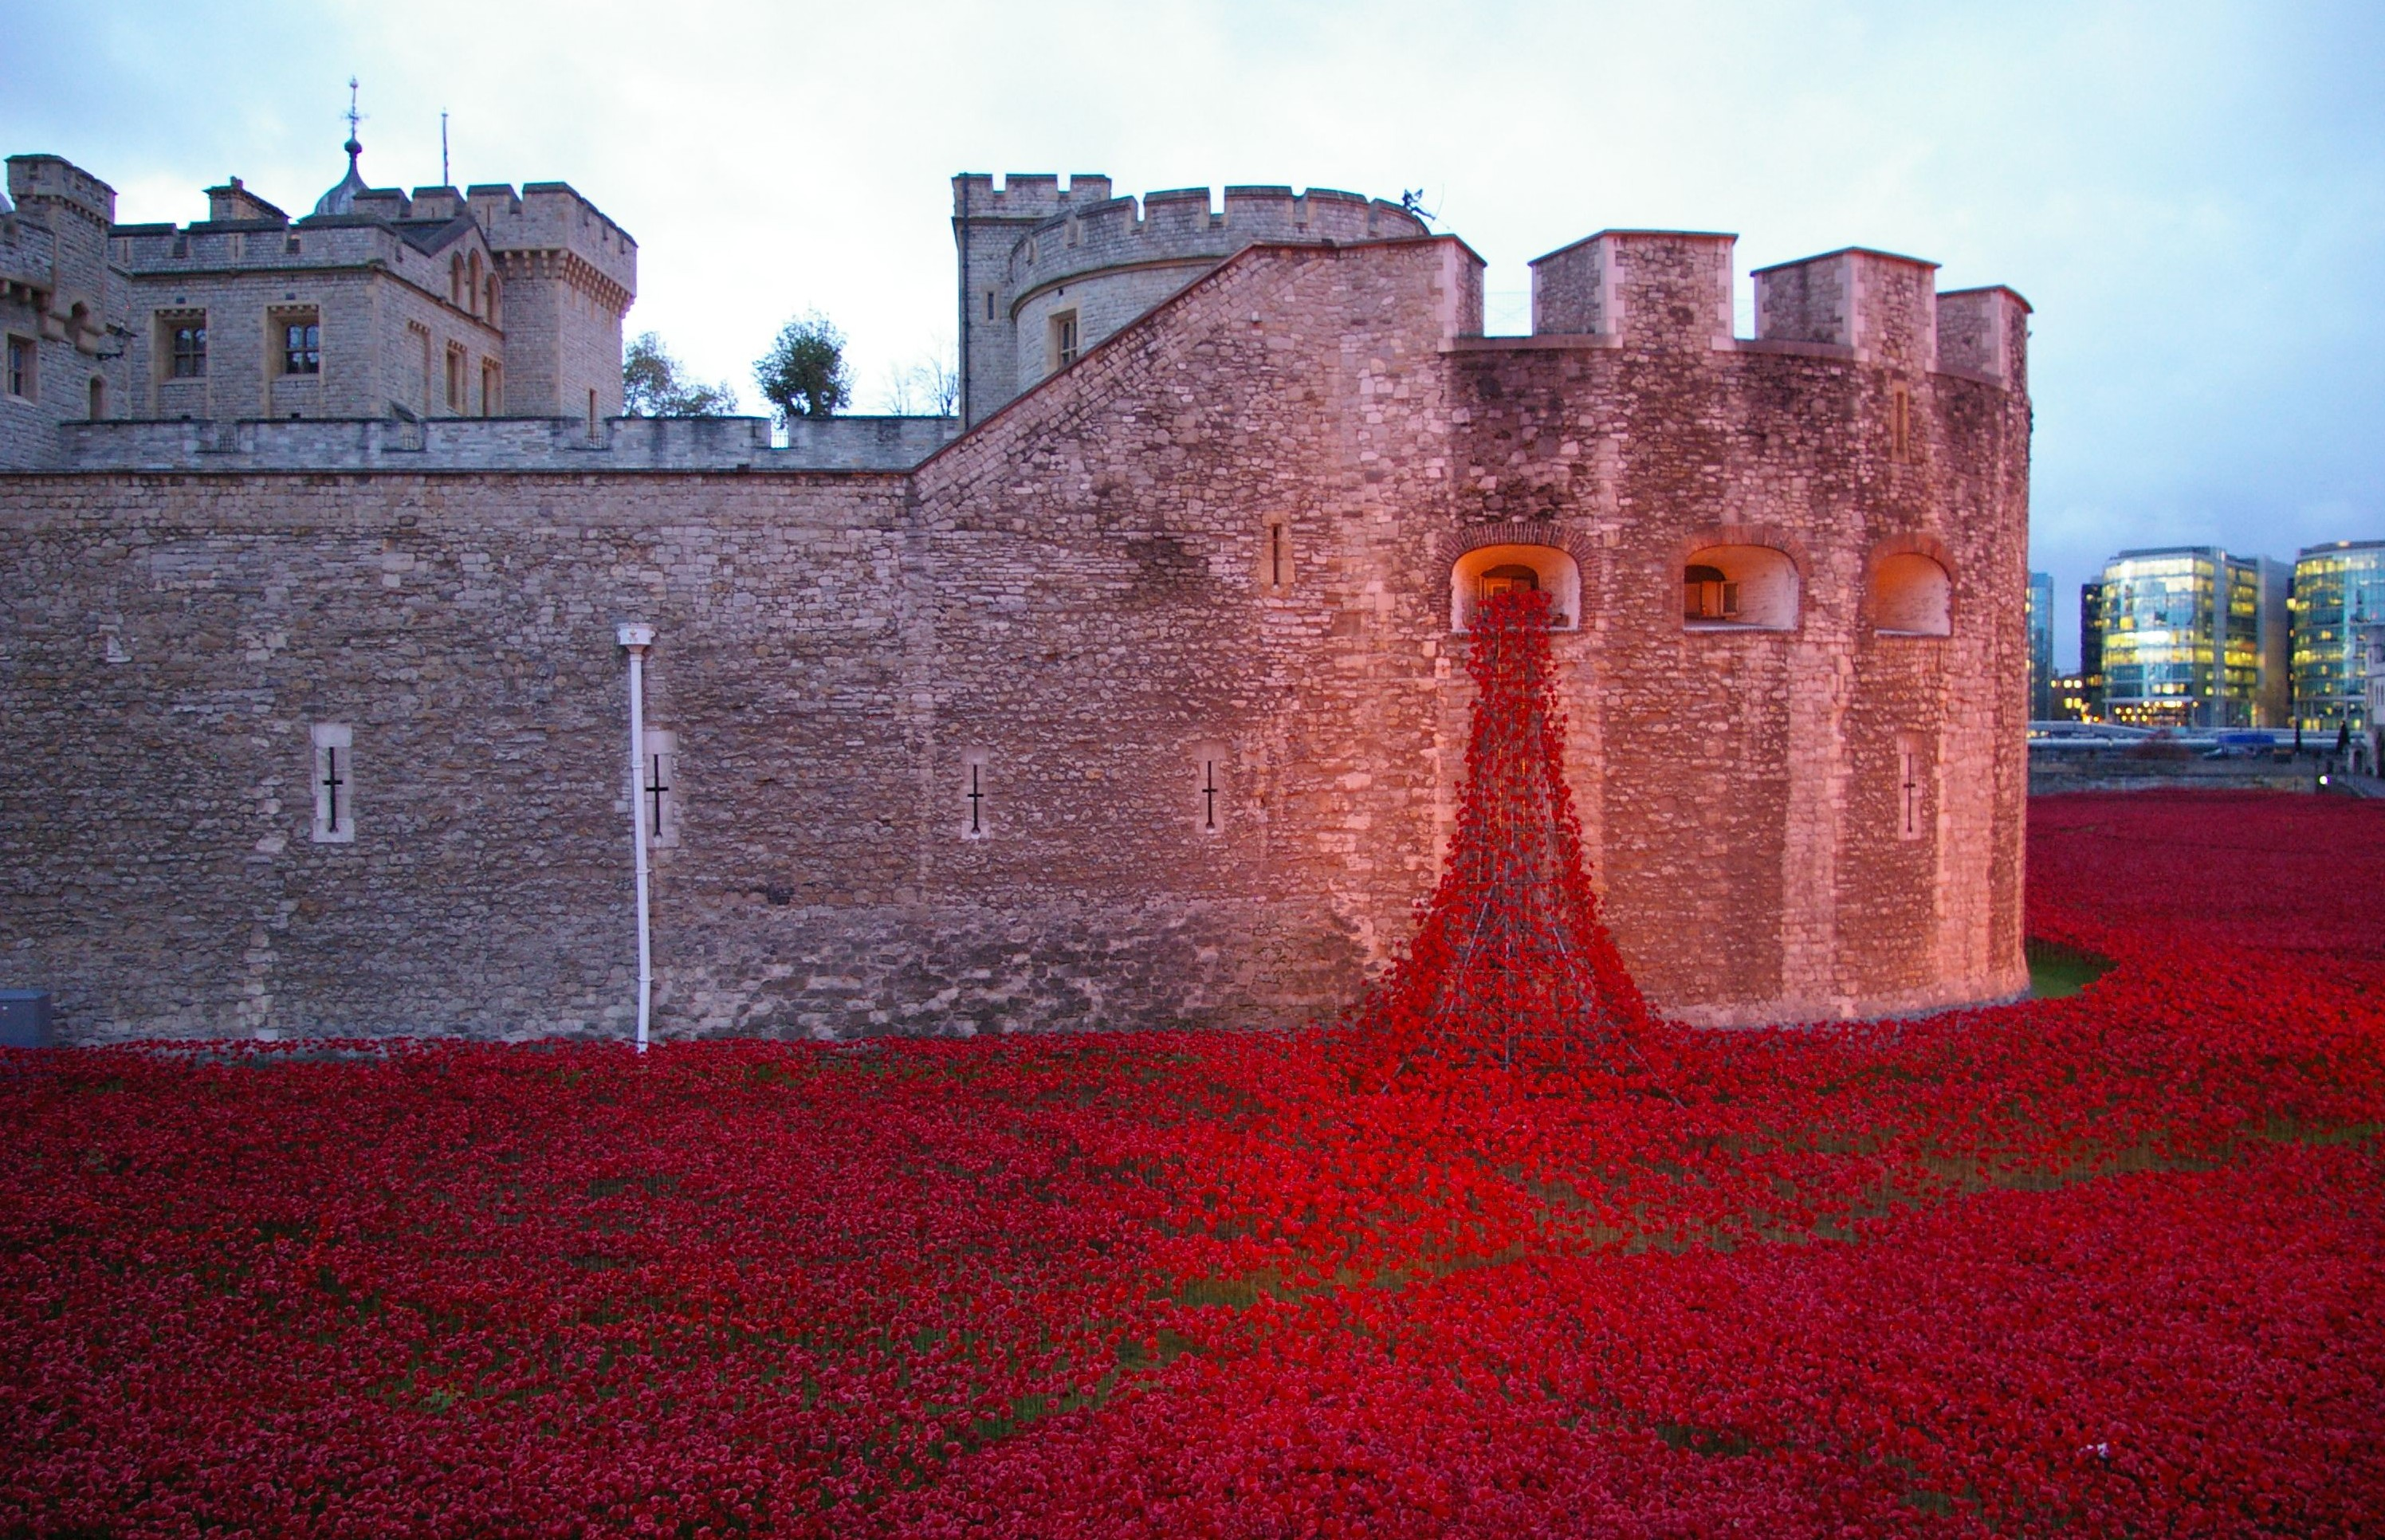 'Blood Swept Lands and Seas of Red' poppy installation at The Tower of London, Britain - 12 Nov 2014